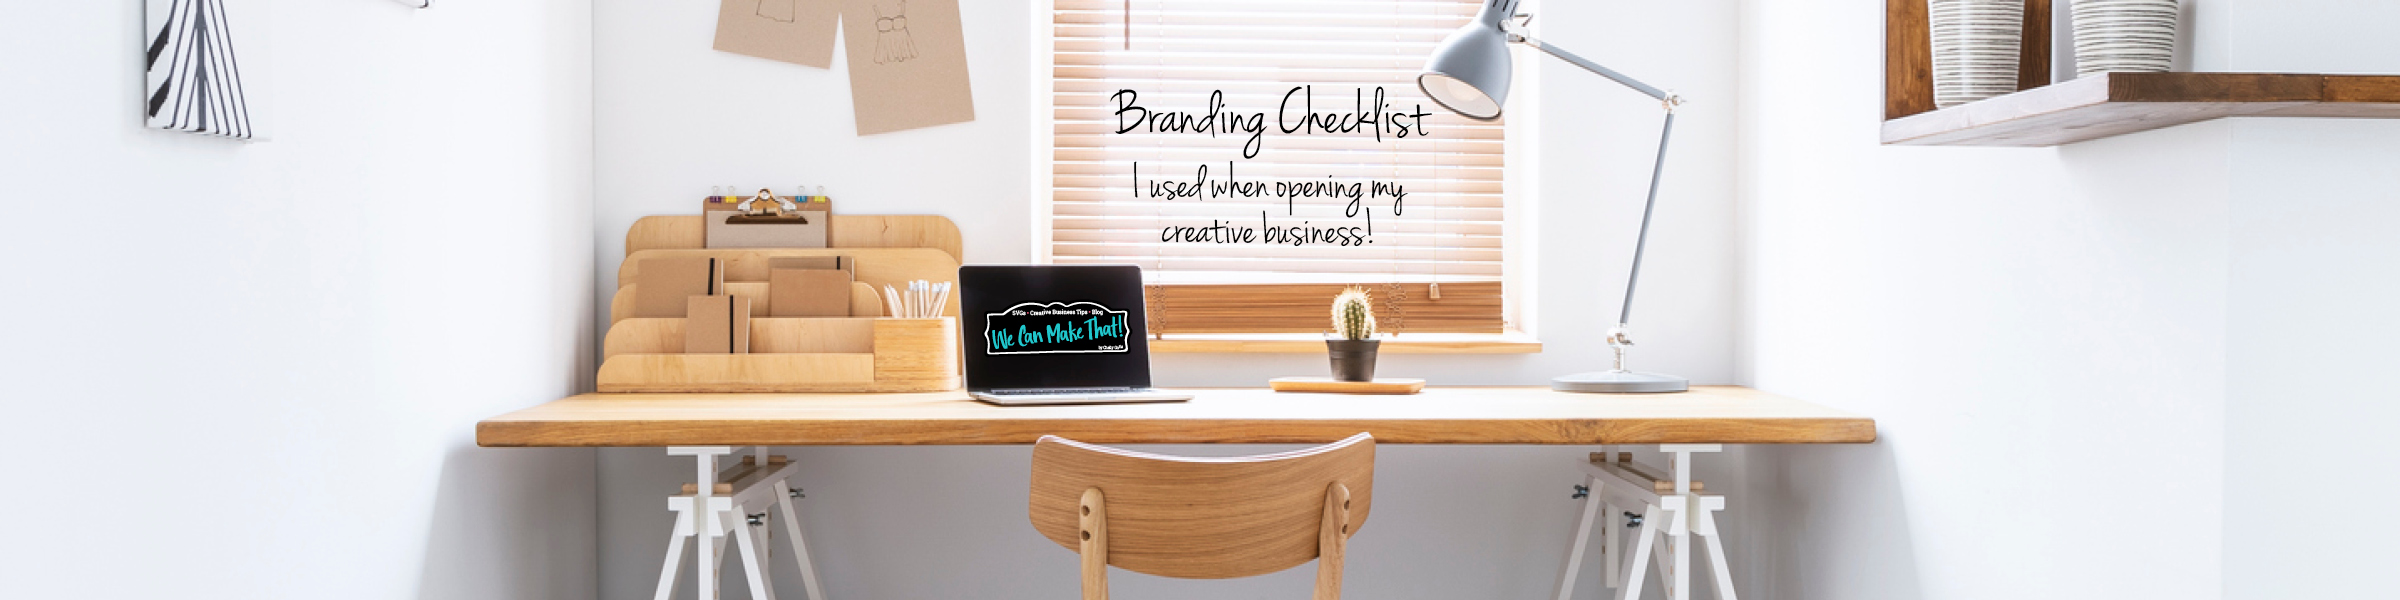 home office and note about branding checklist